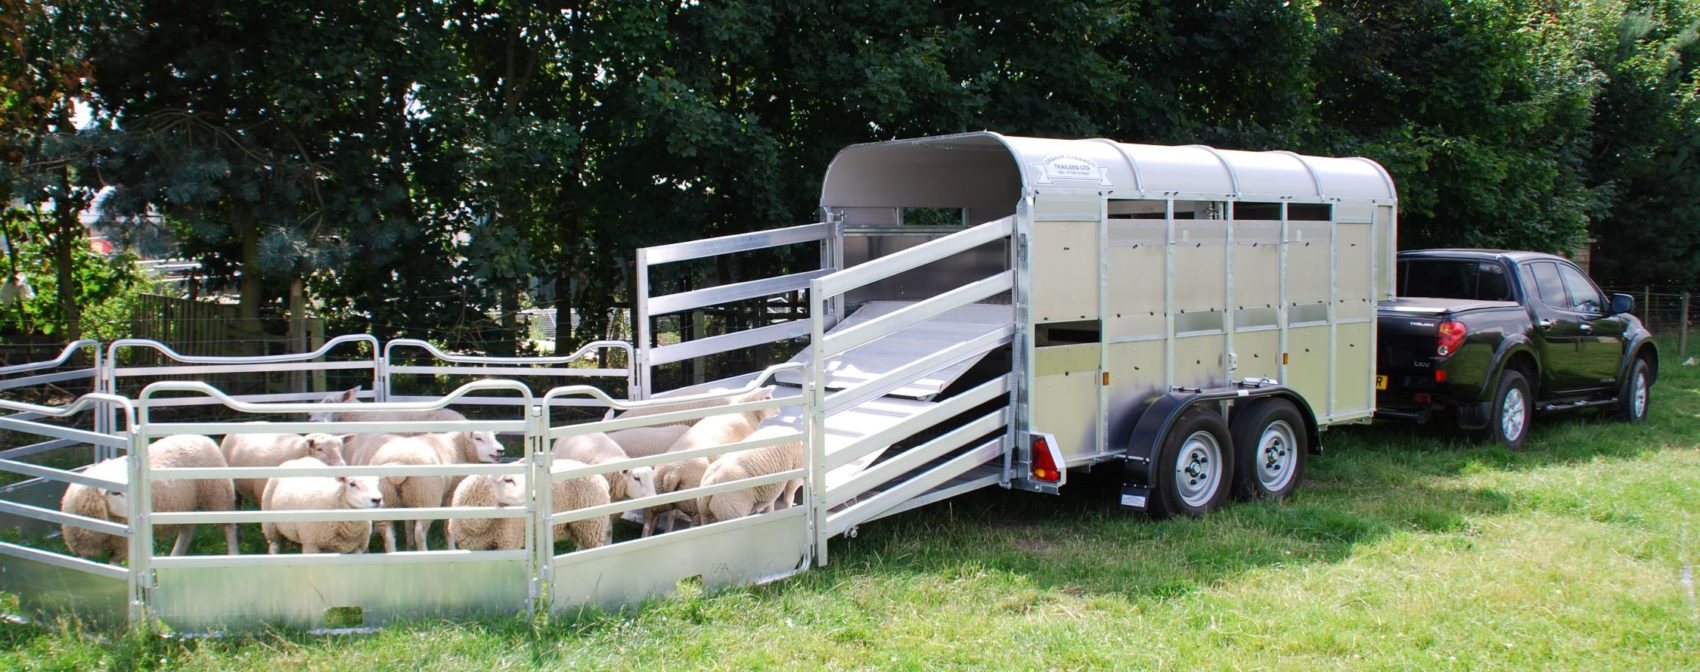 Edwards Trailers Cattle Box with sheep